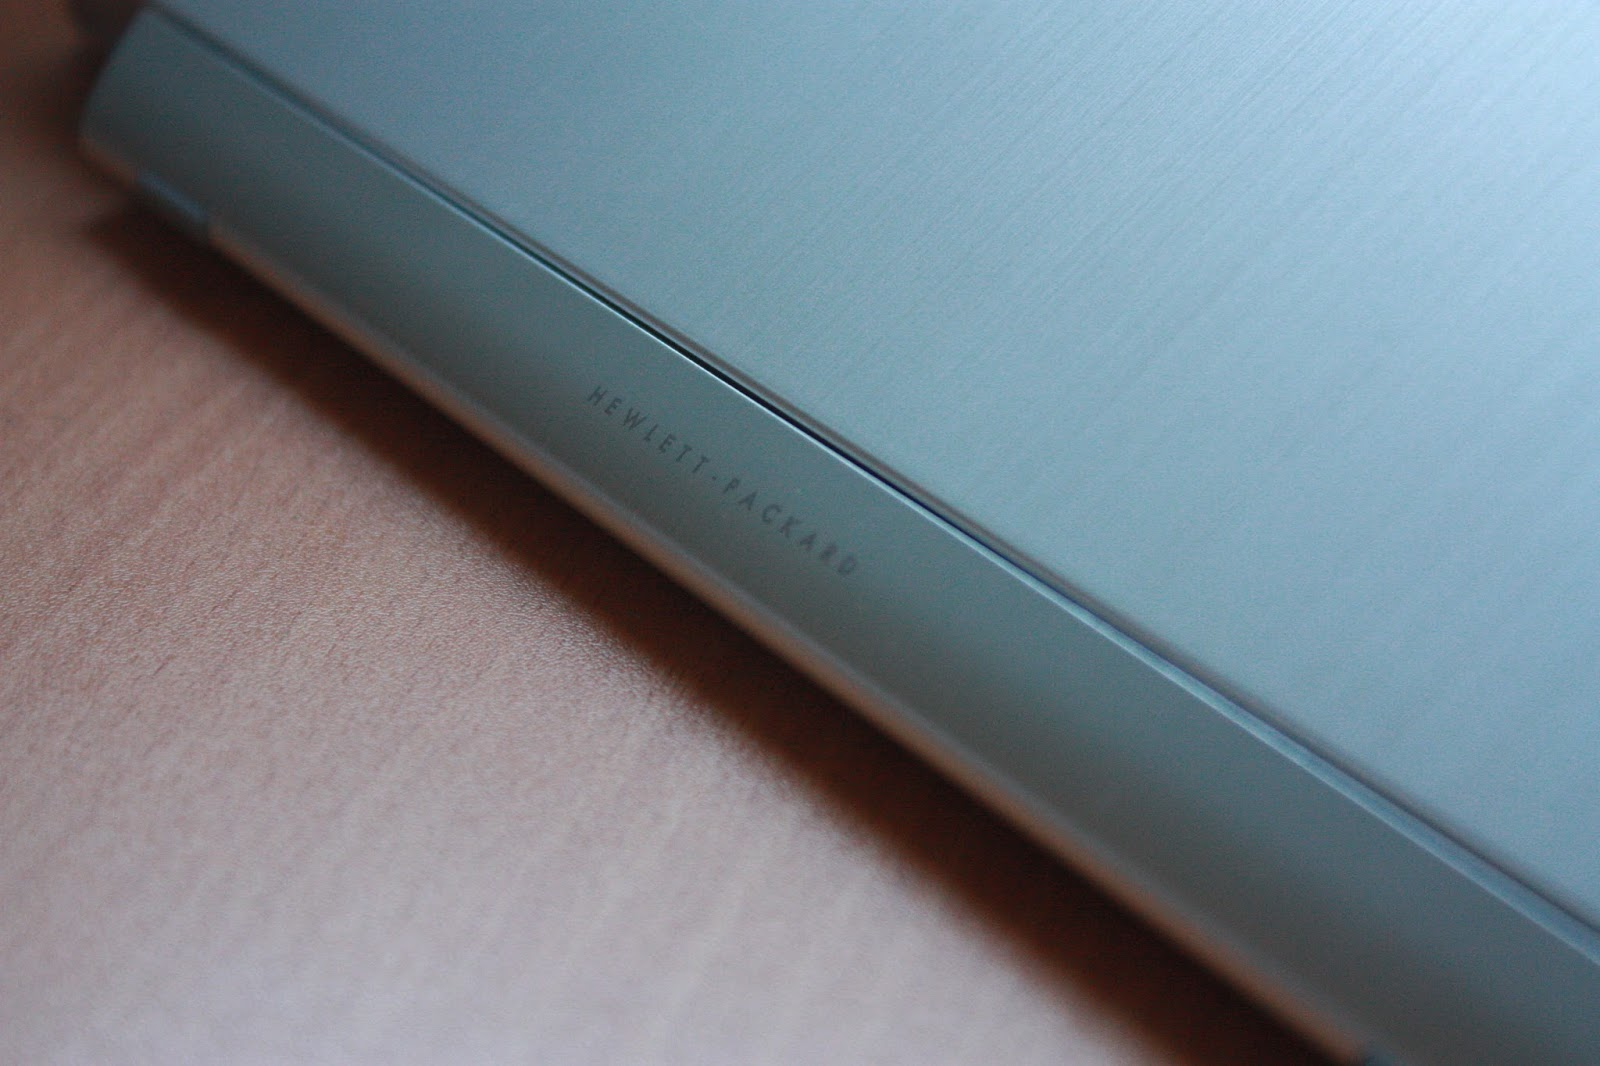 Review] HP Envy x2 PC - The Windows 8 Convertible PC for ...